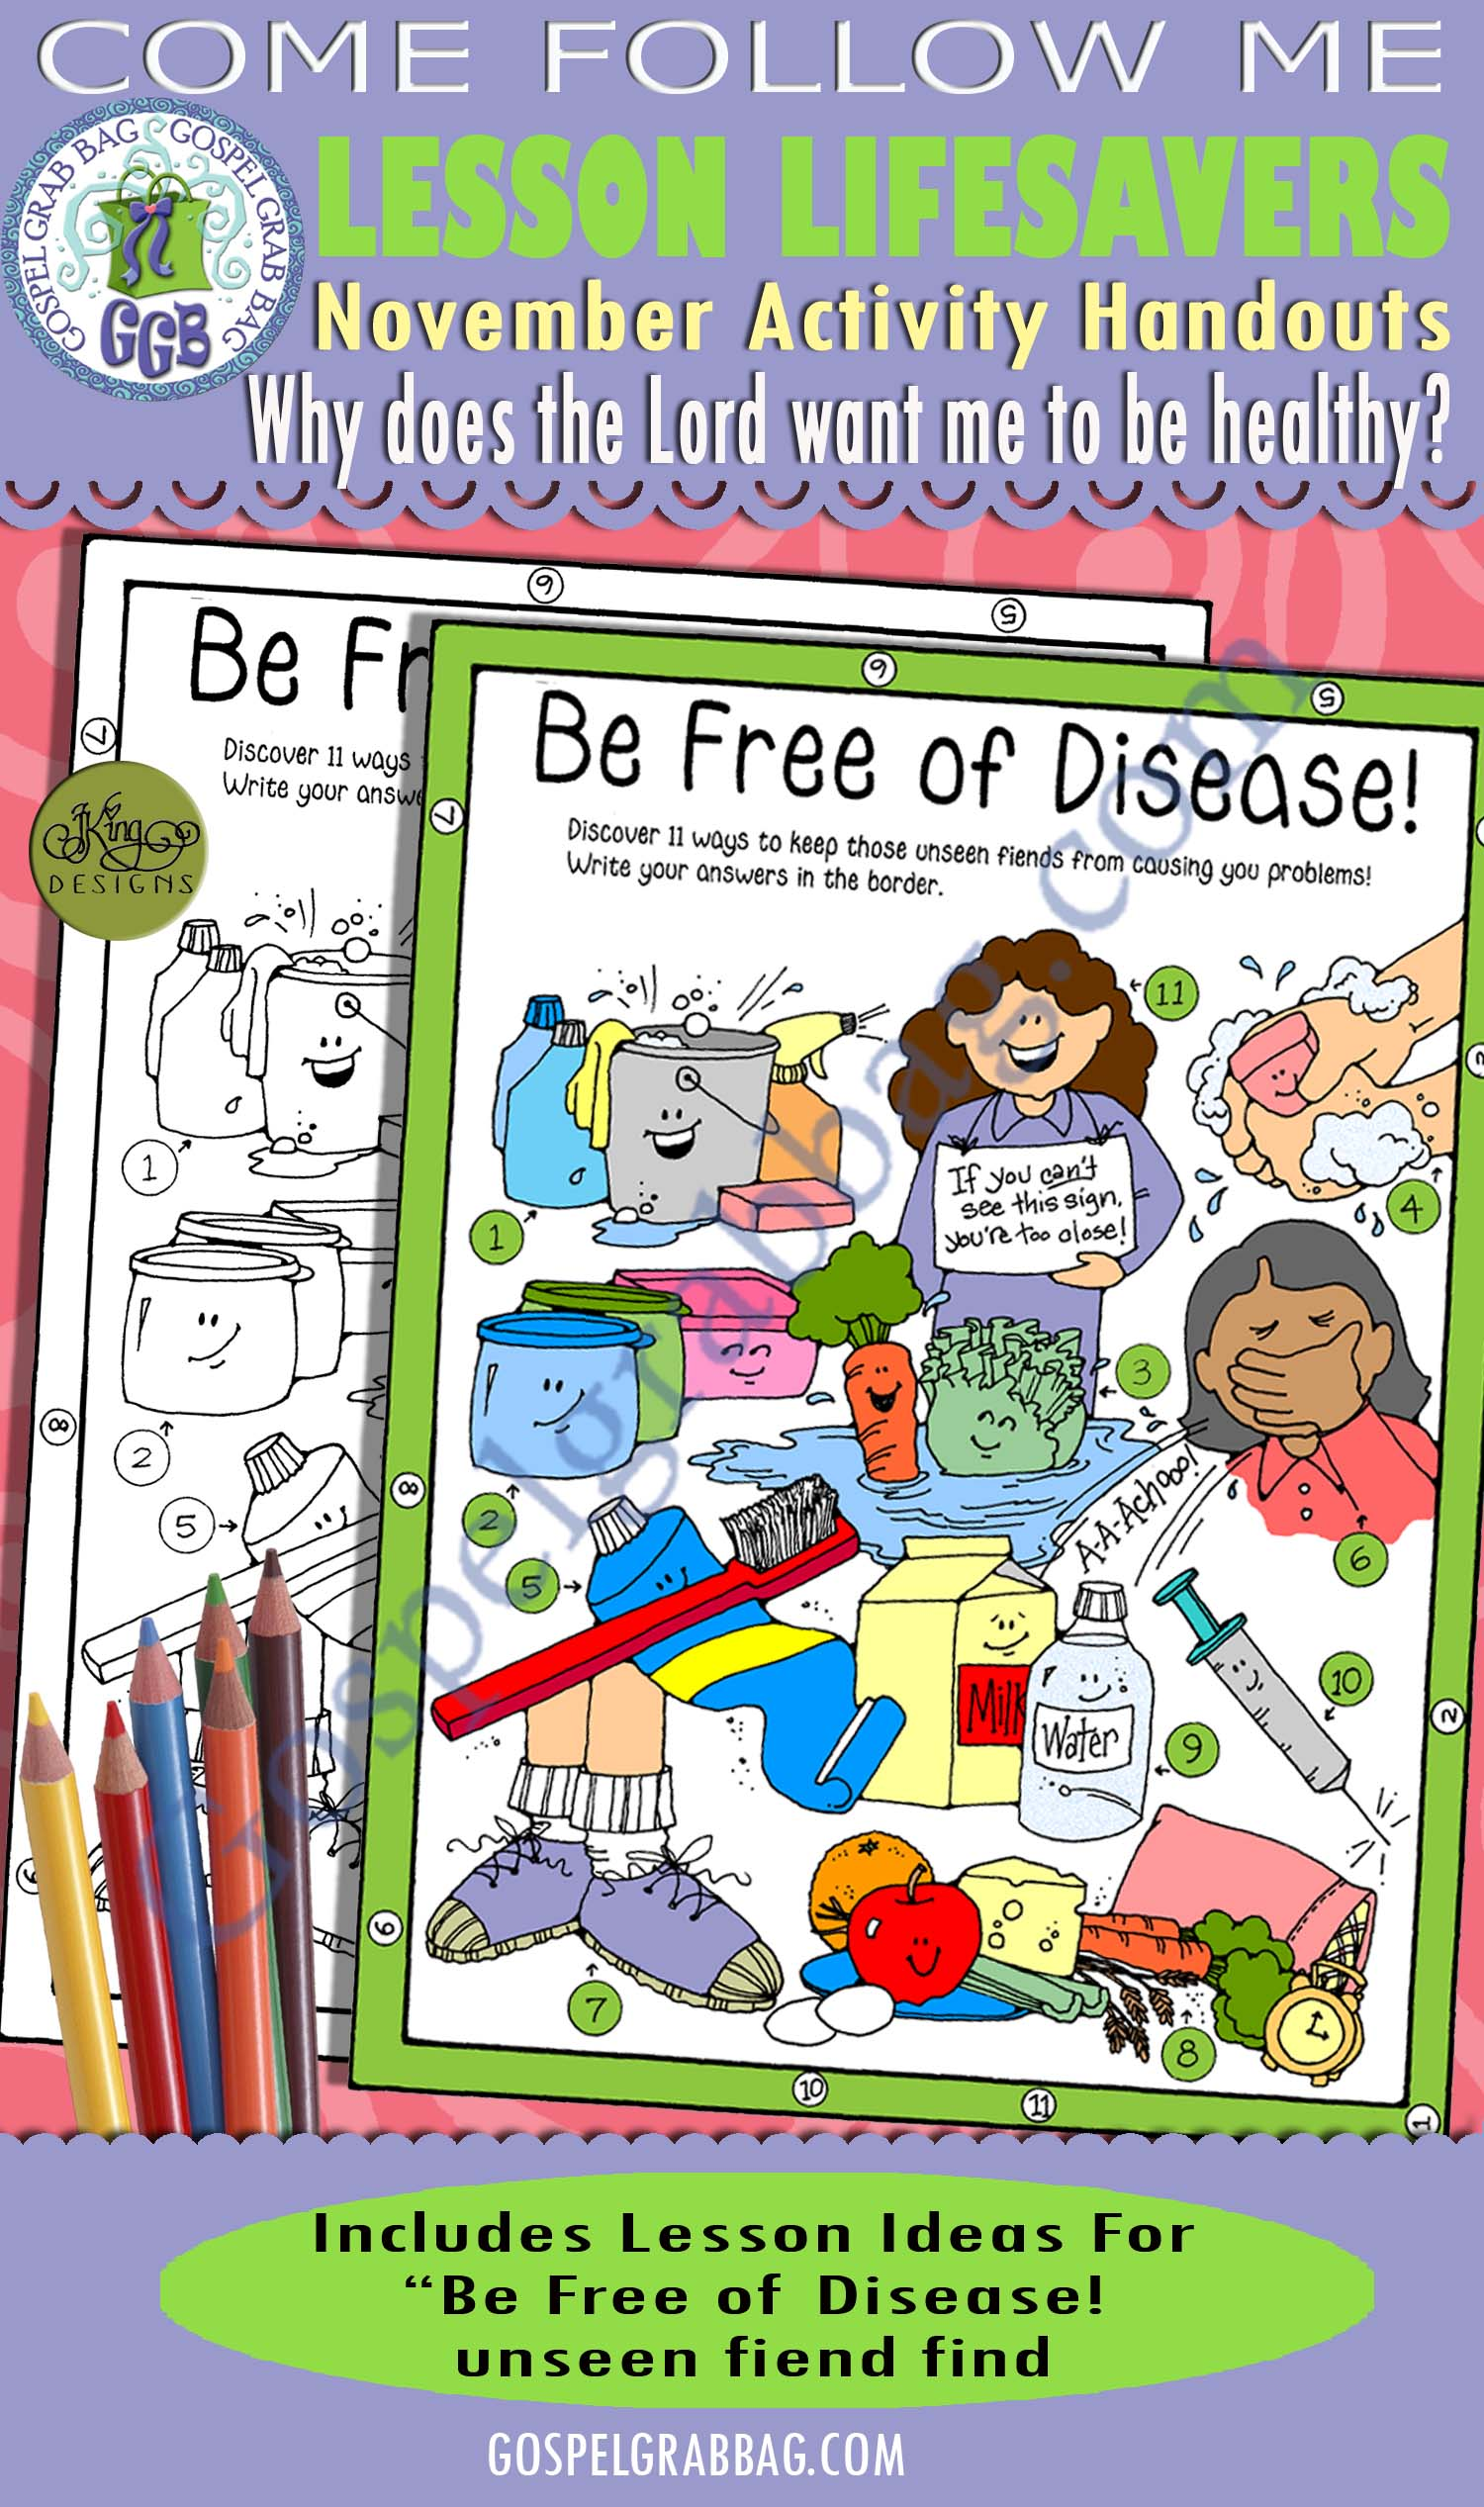 "$1.75 November Lesson 5 - Come Follow Me ""Why does the Lord want me to be healthy?"" ACTIVITY: Free of Disease! unseen fiend find puzzle"